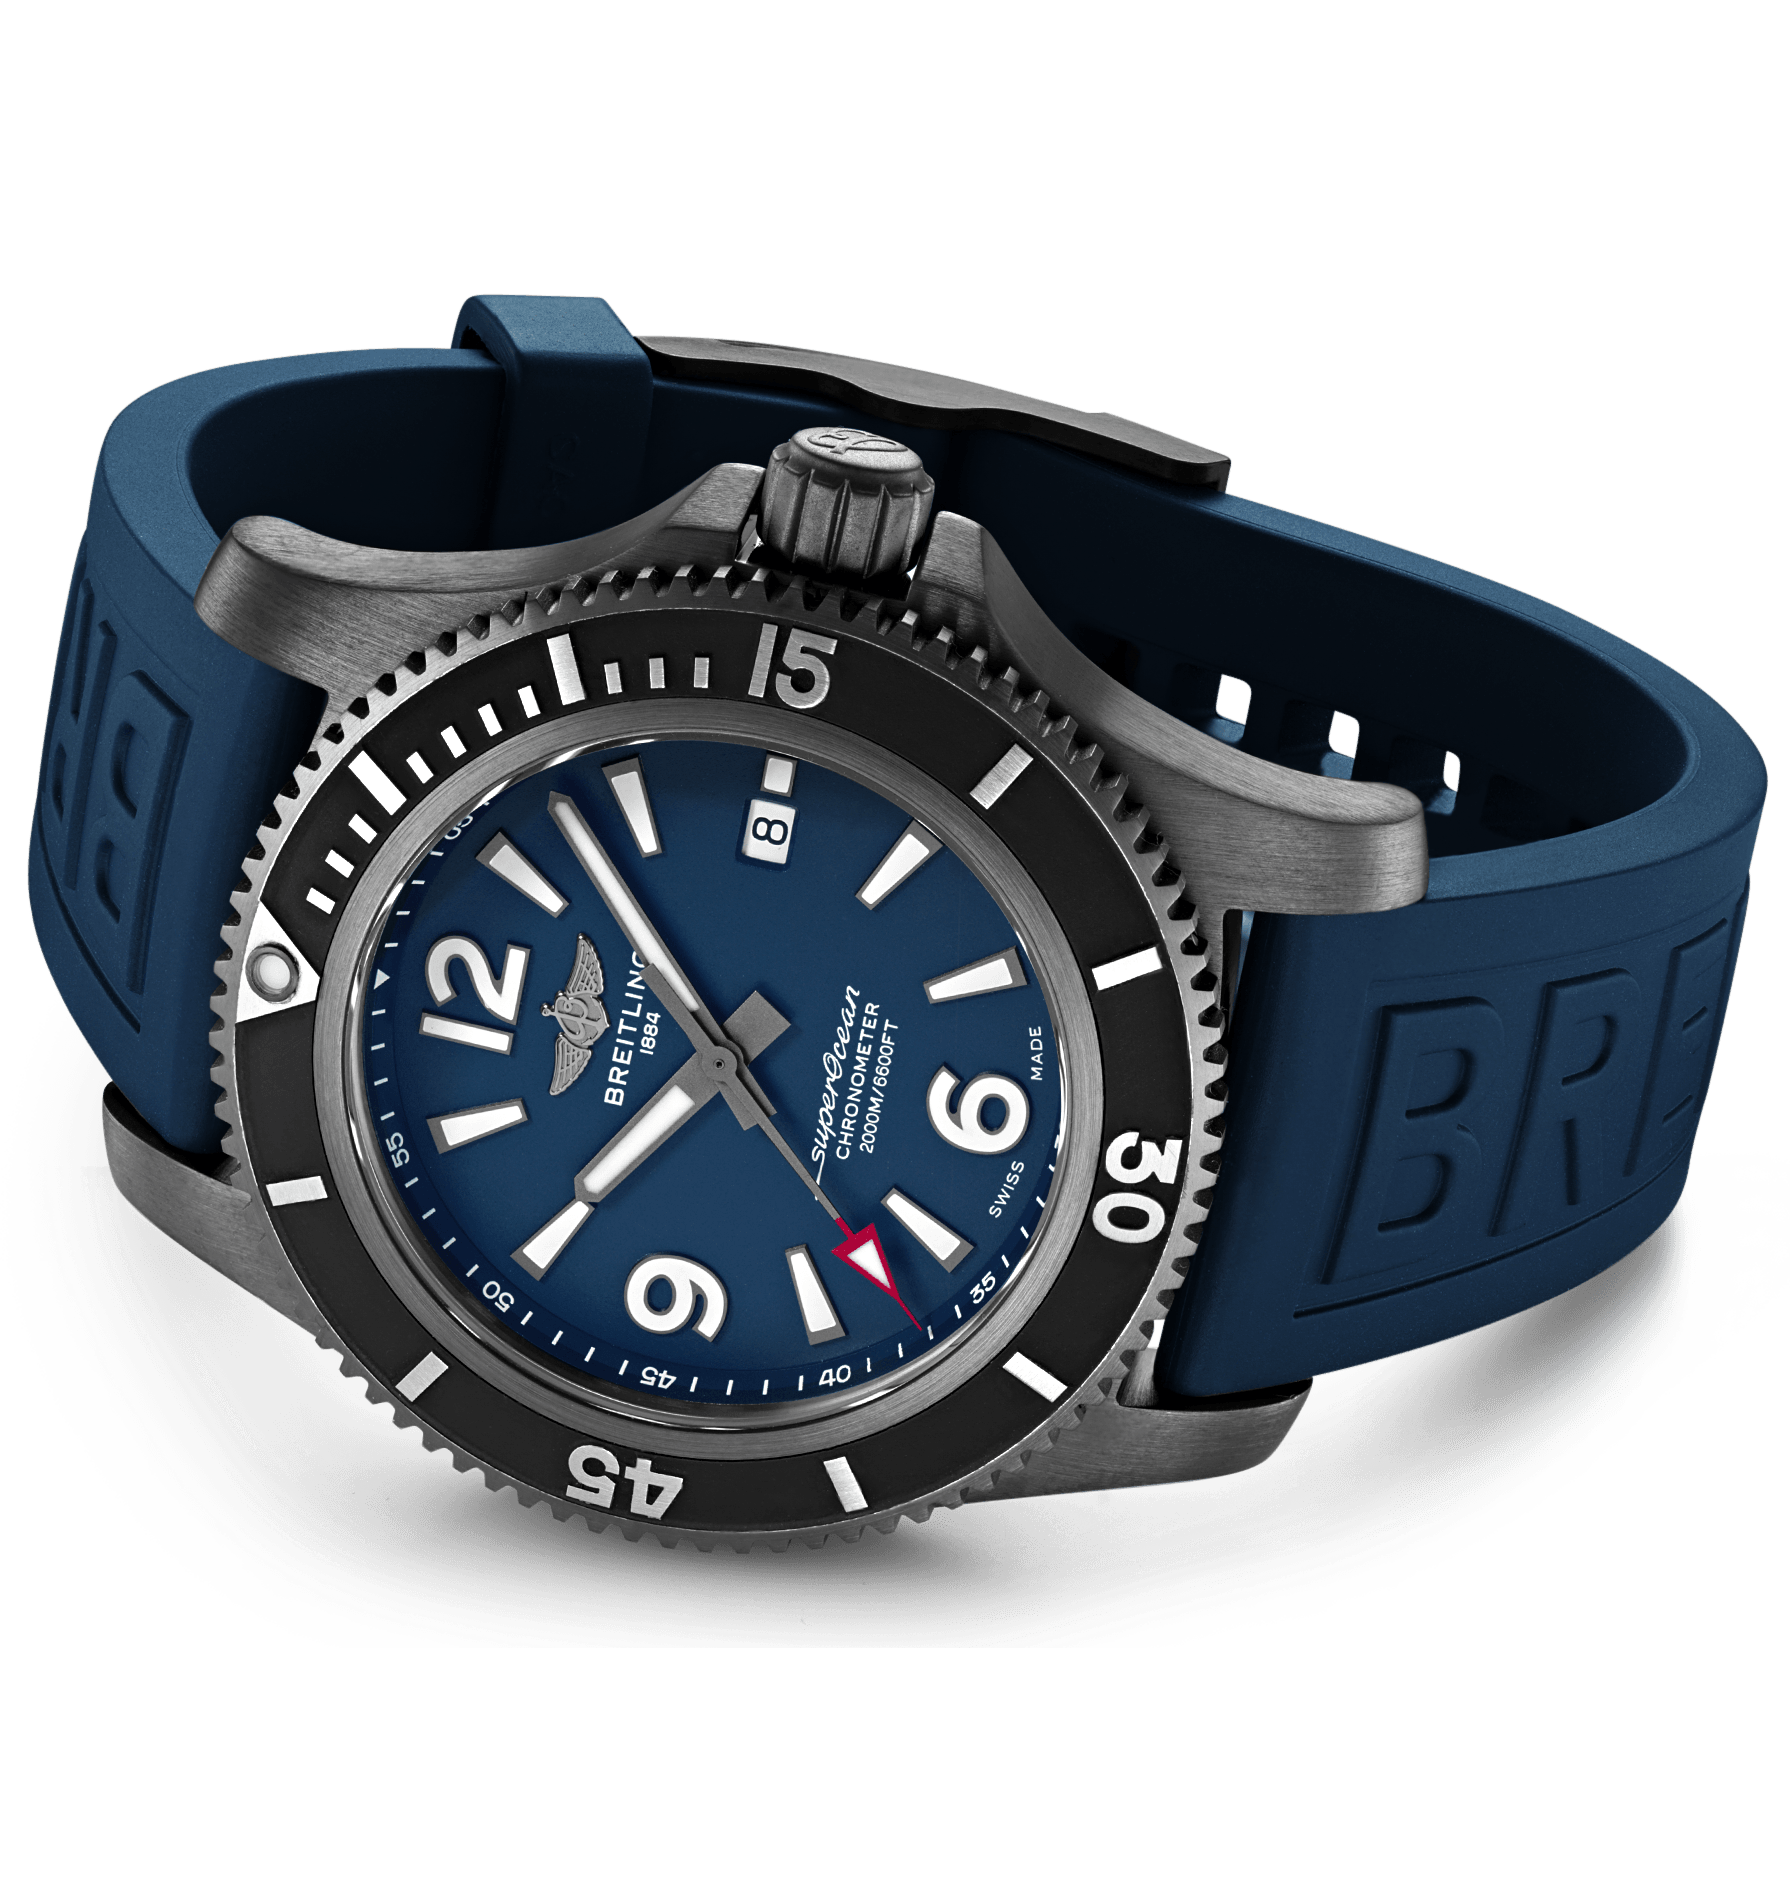 m17368d71c1s1-superocean-automatic-46-black-steel-rolled-up